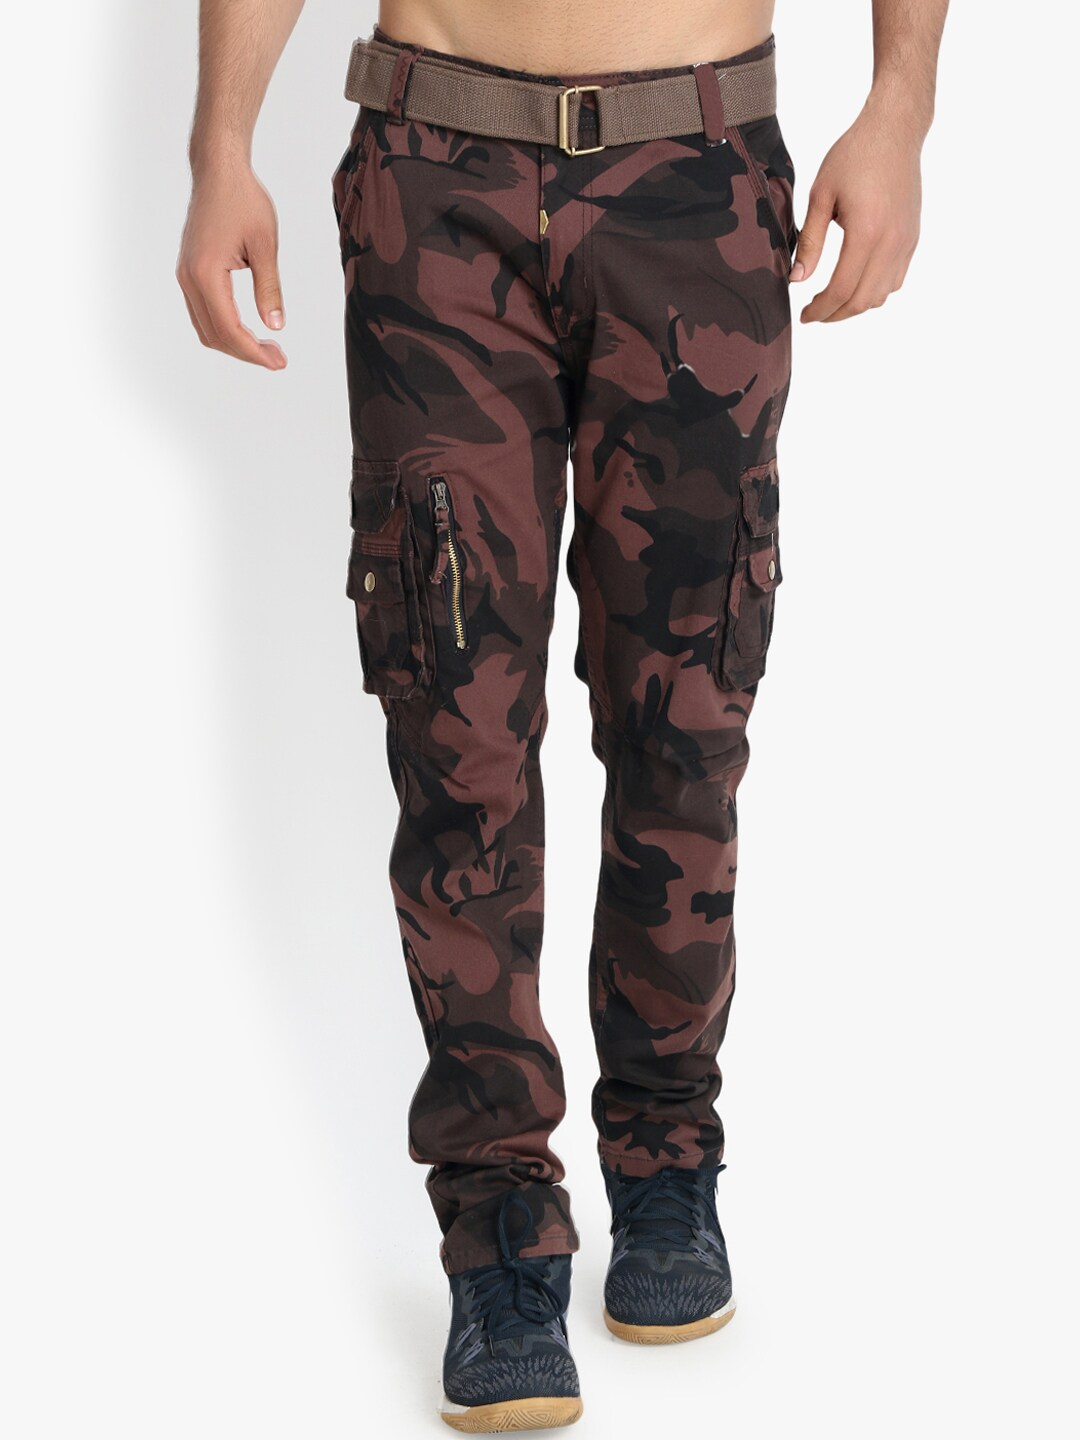 cdd15fa2abd3 Camouflage Pants - Buy Camo Army Cargo Pants for Men   Women